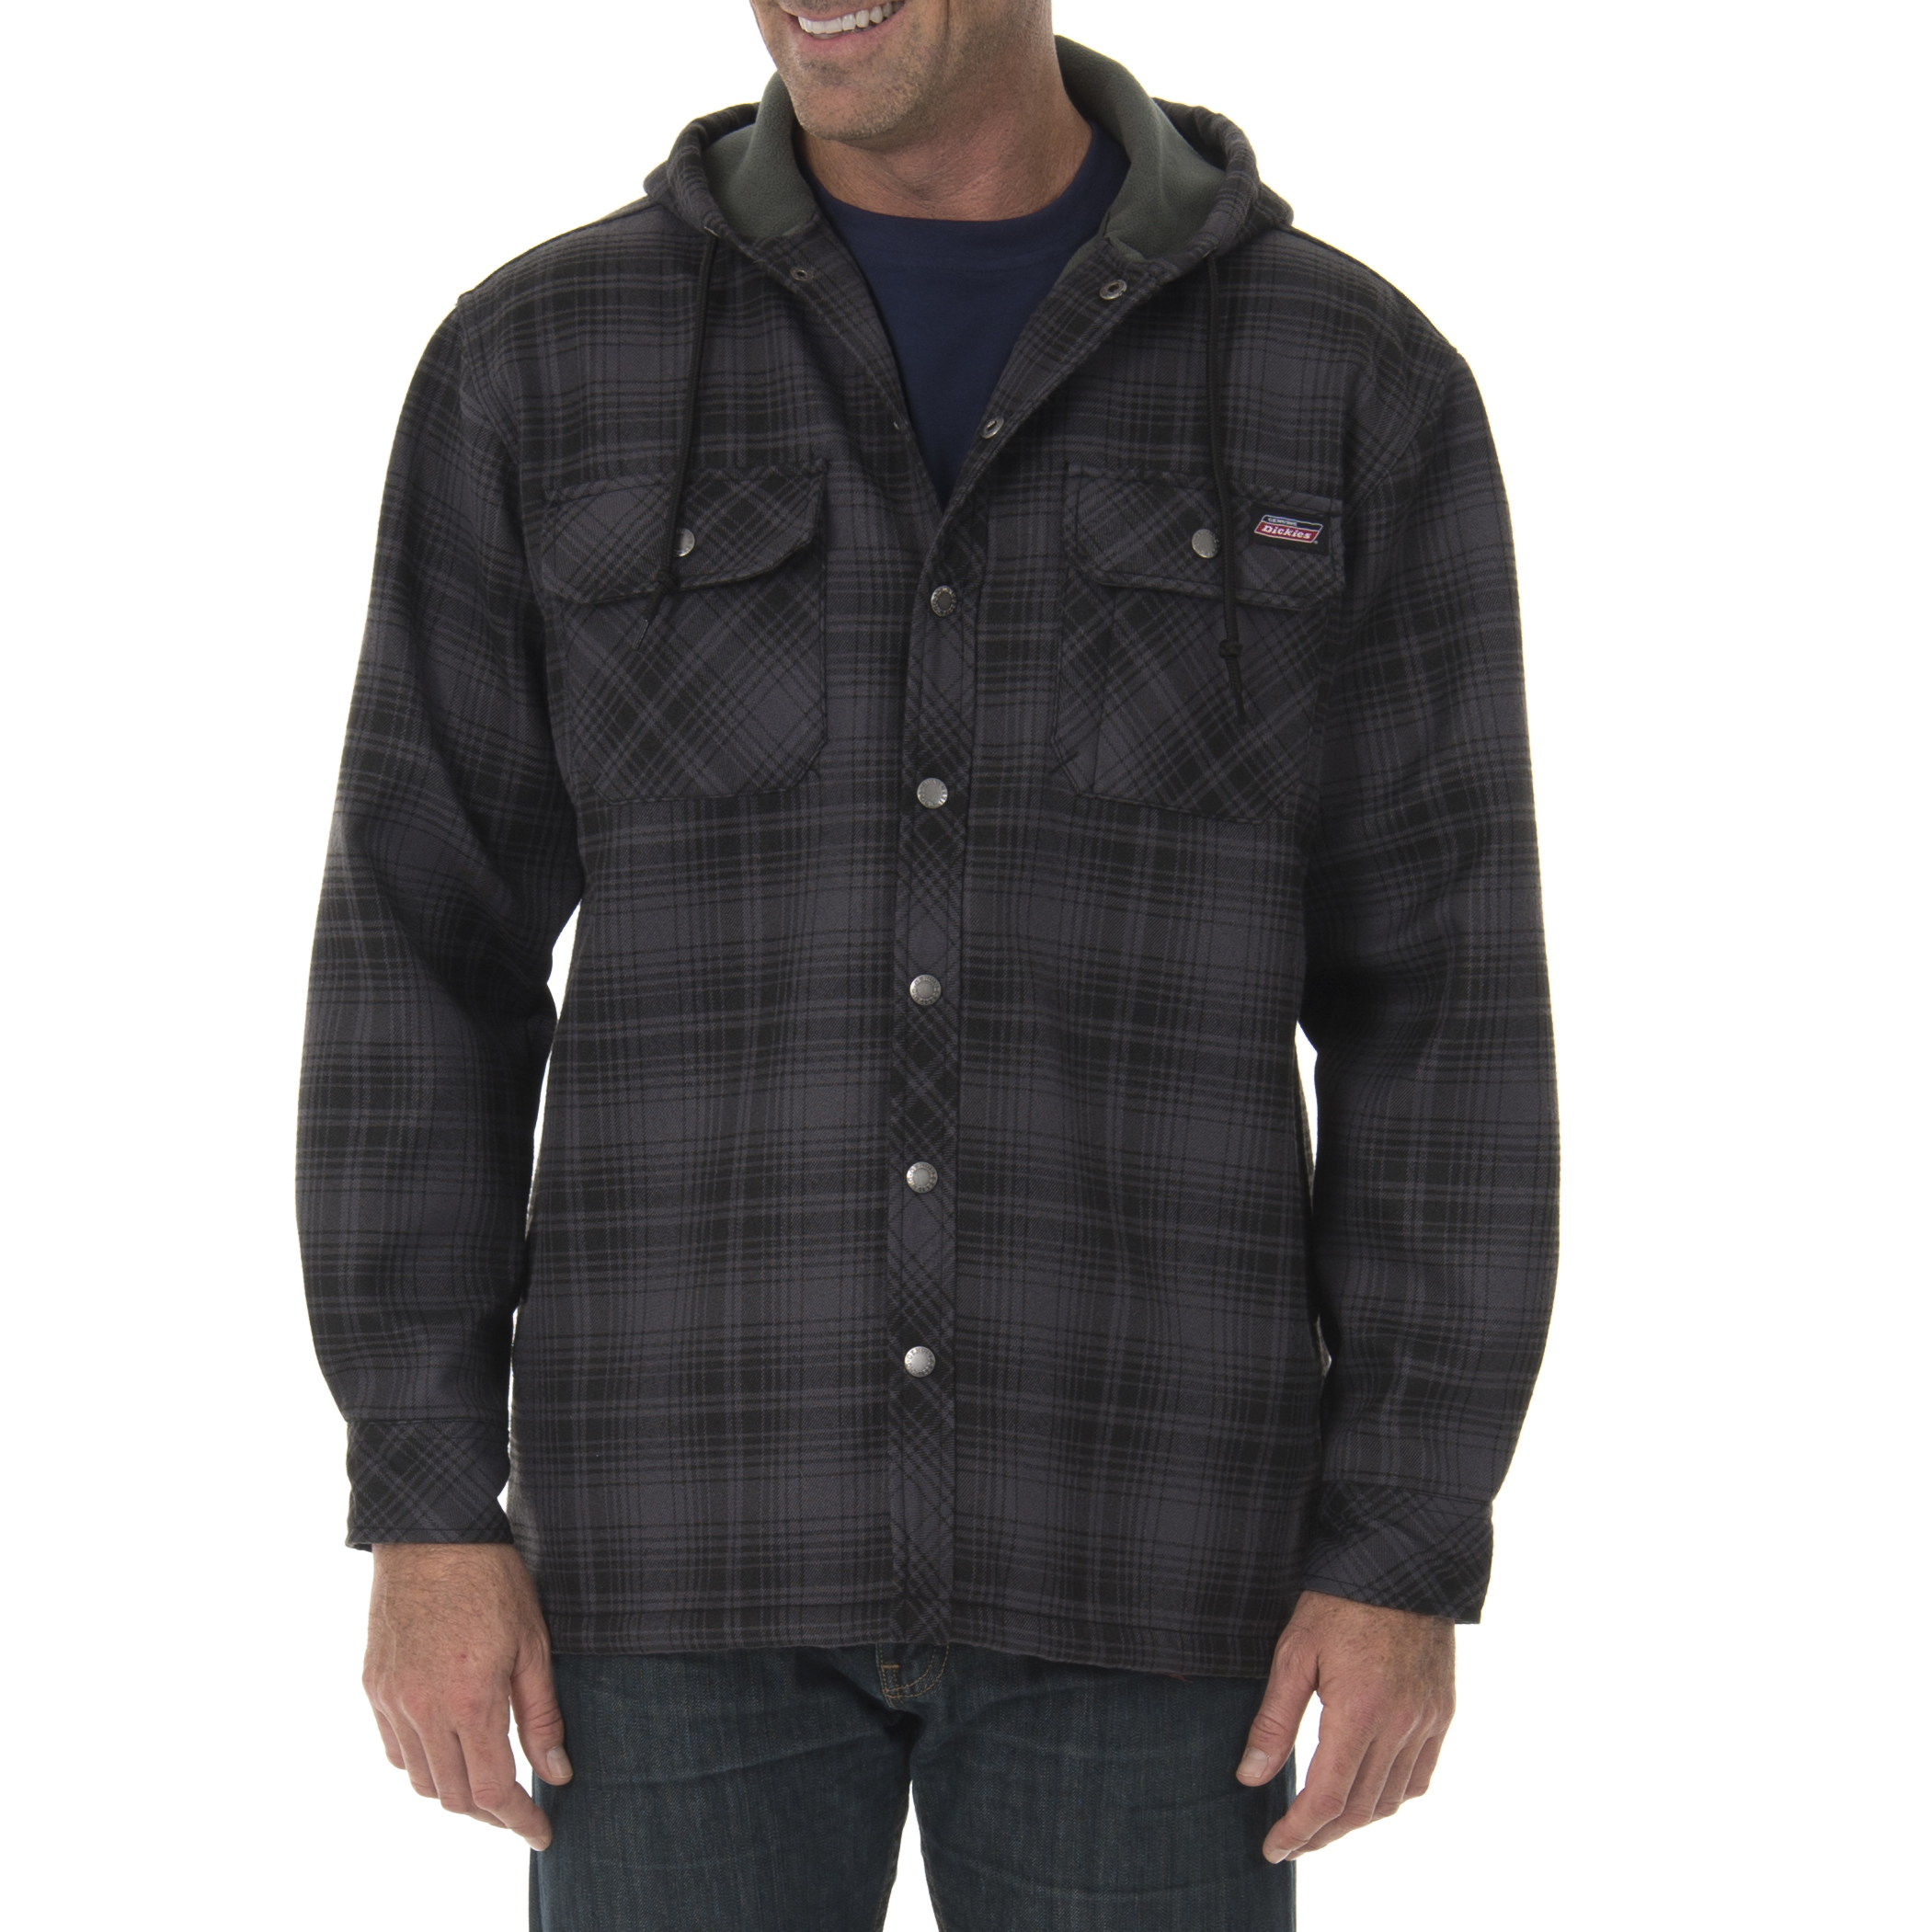 Dickies Big Men's Twill Polar Fleece Lined Shirt Jacket